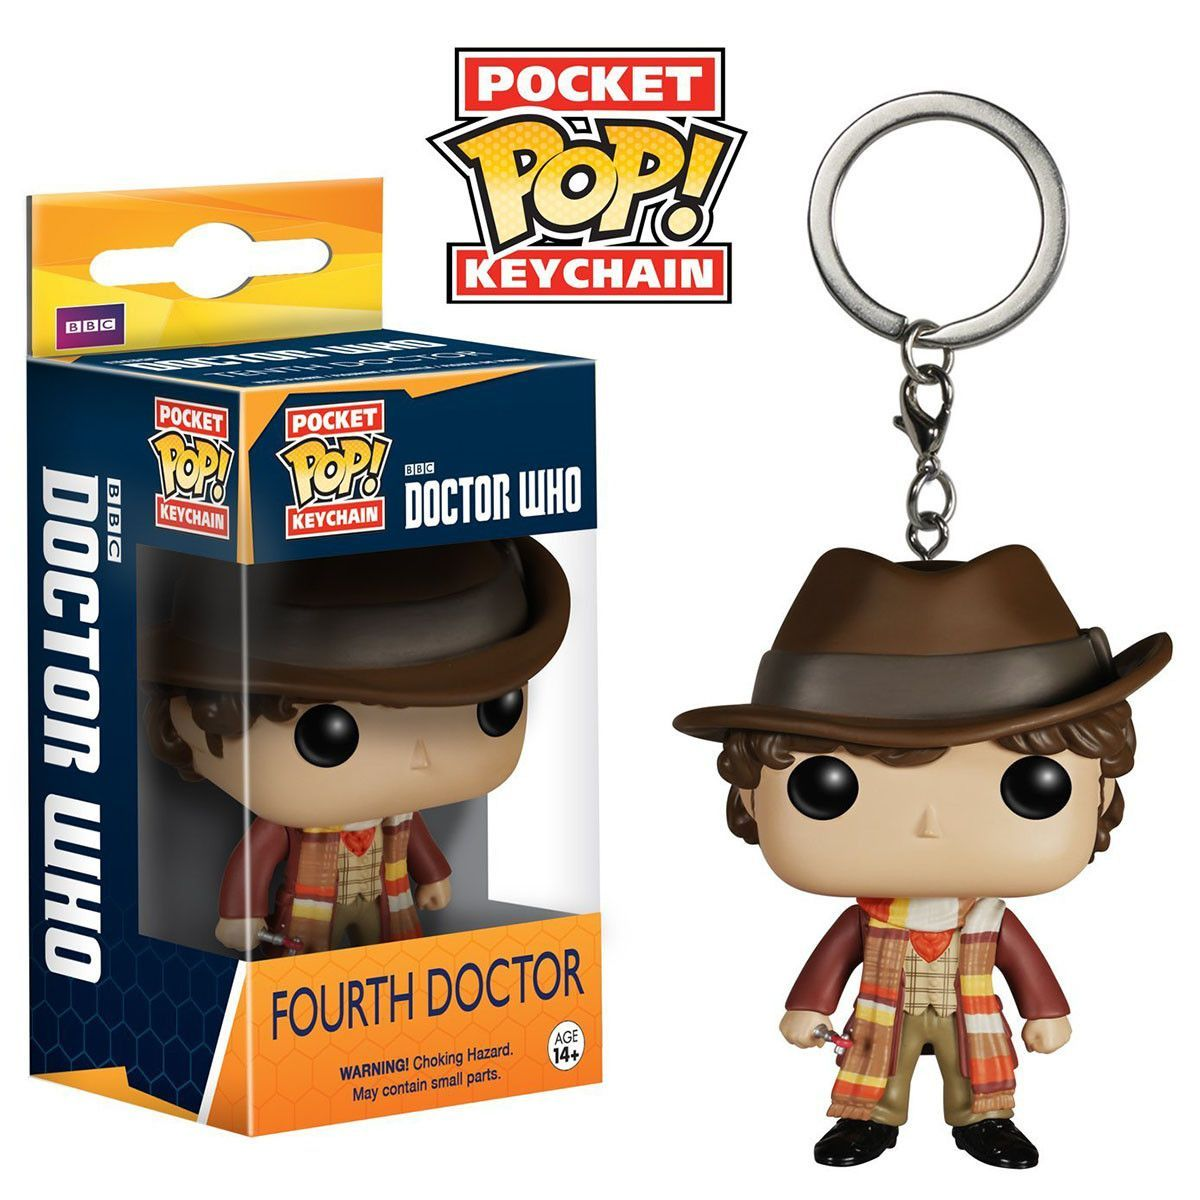 Doctor Who Pocket Pop Fourth Doctor Vinyl Figure Keychain Doctor Who 4th Doctor Vinyl Figures